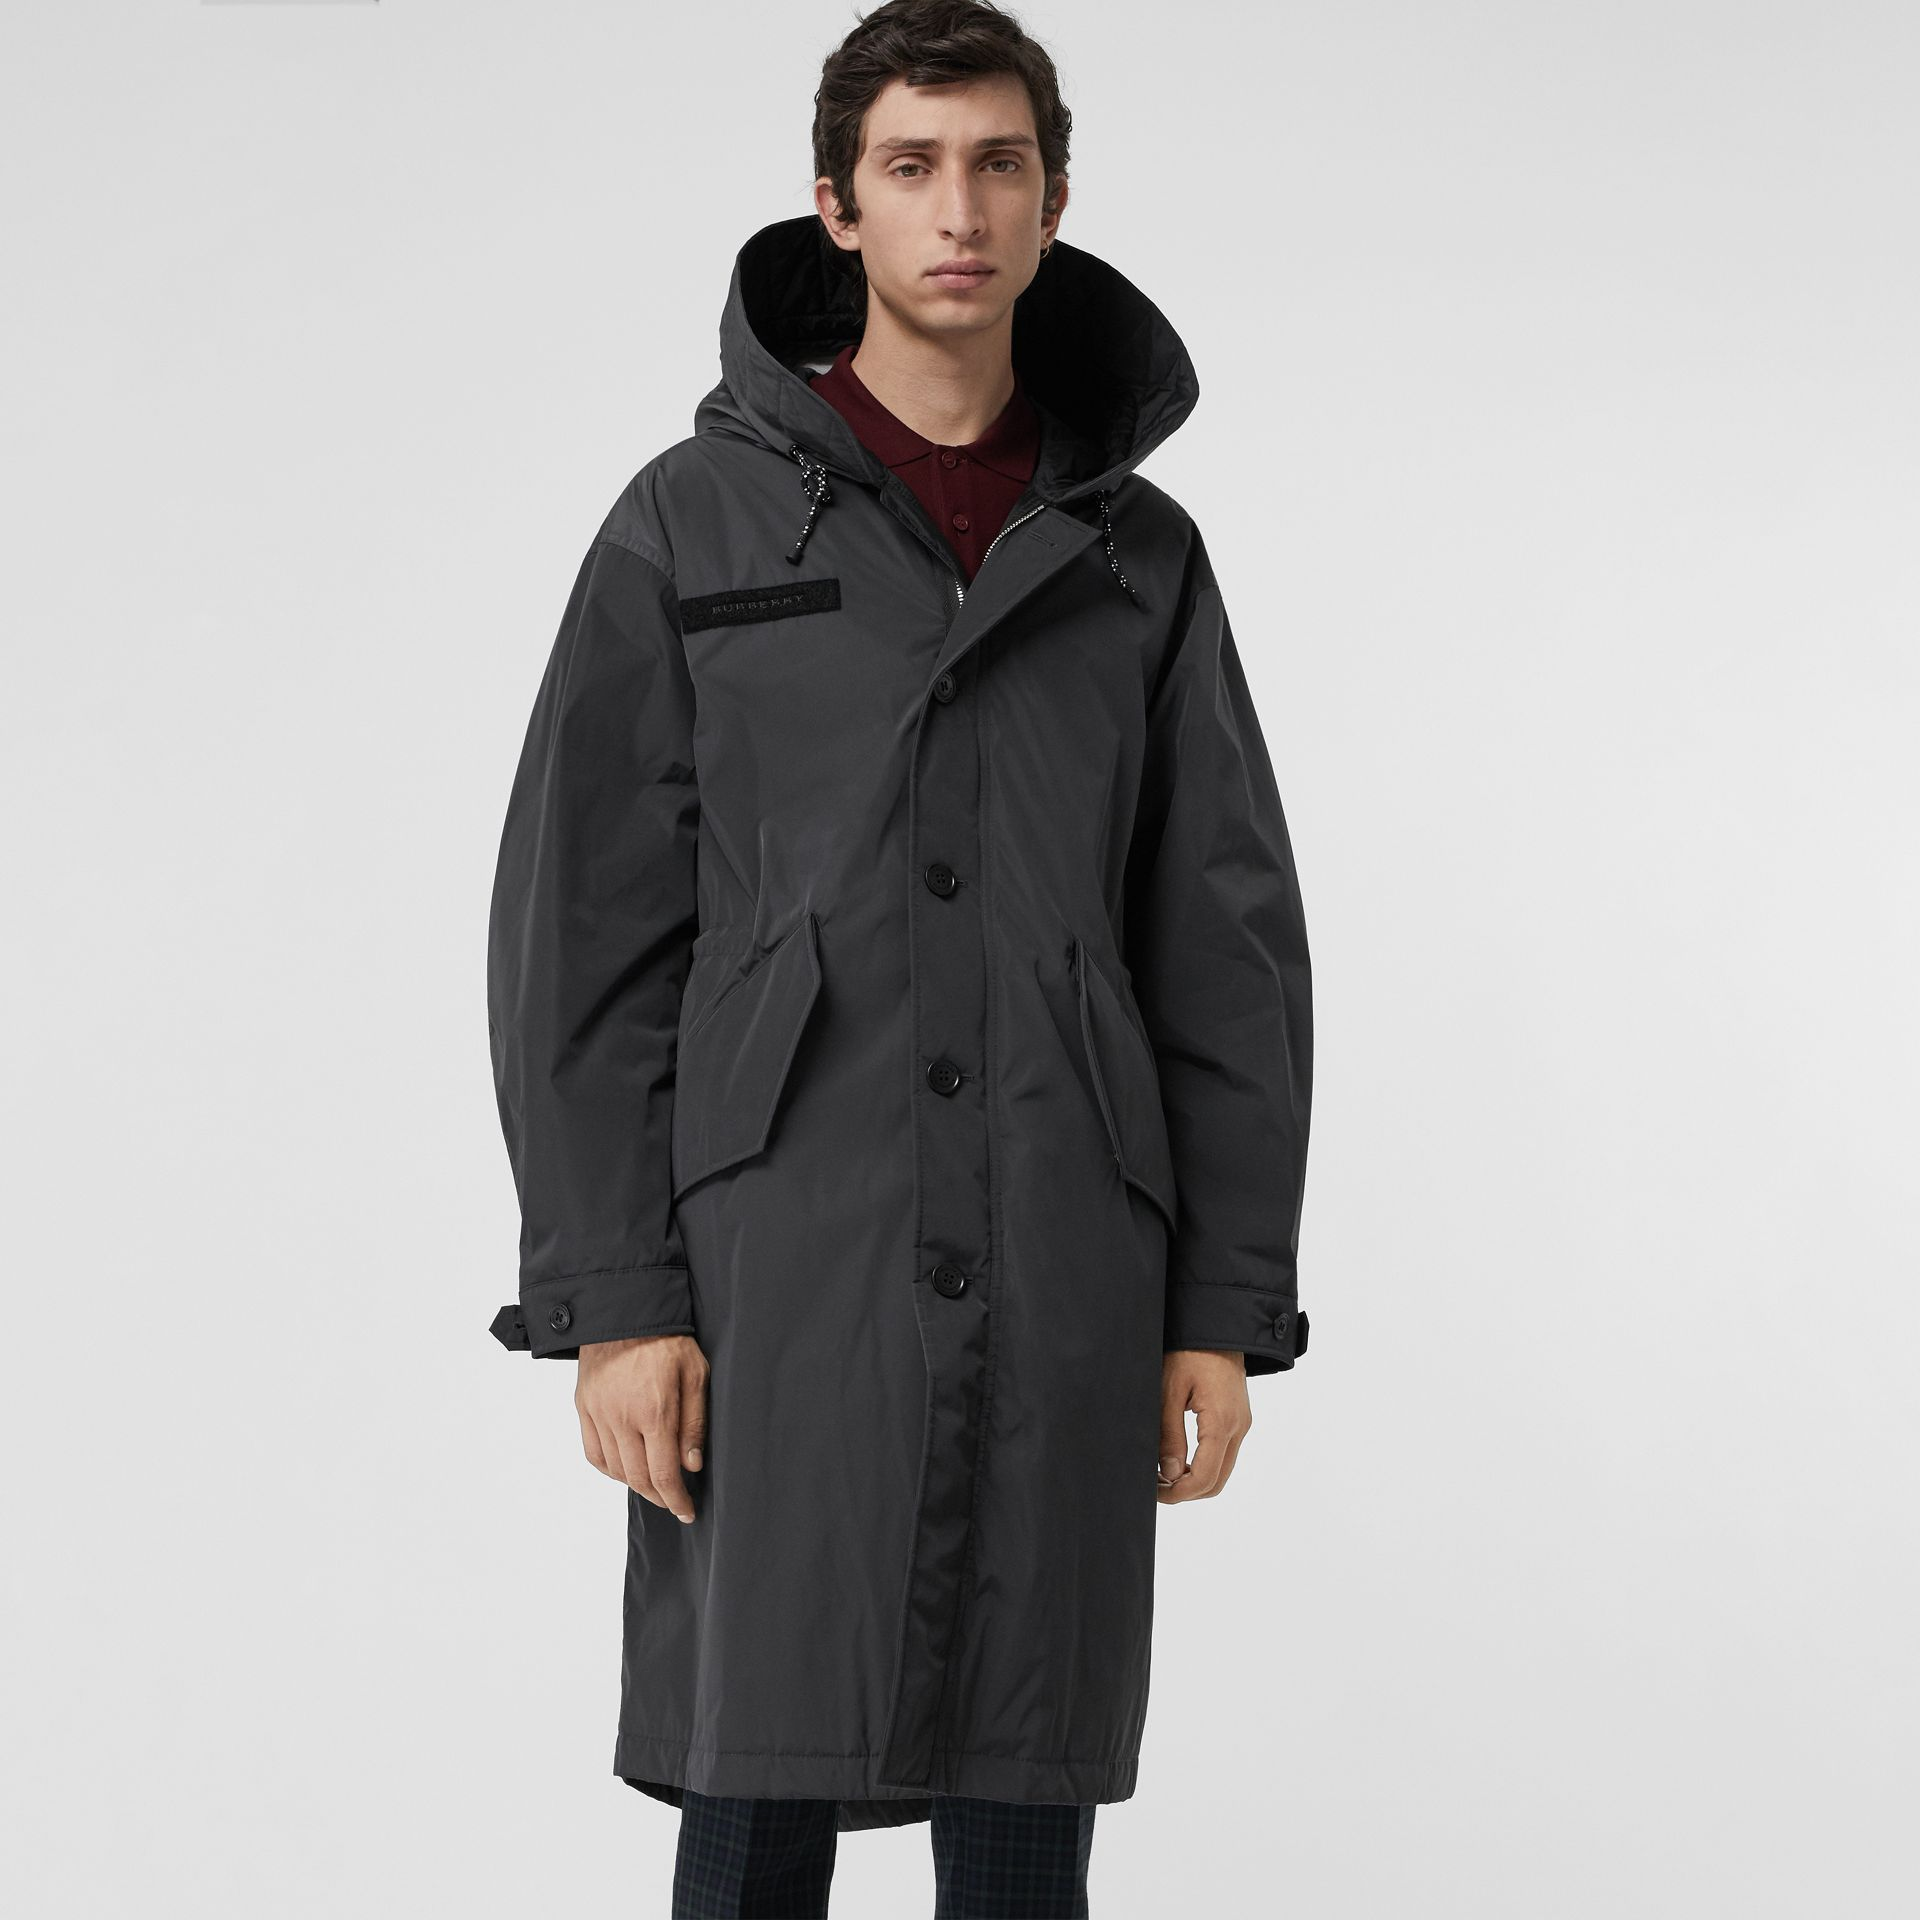 Quilt-lined Technical Nylon Parka in Dark Charcoal - Men | Burberry Hong Kong - gallery image 5